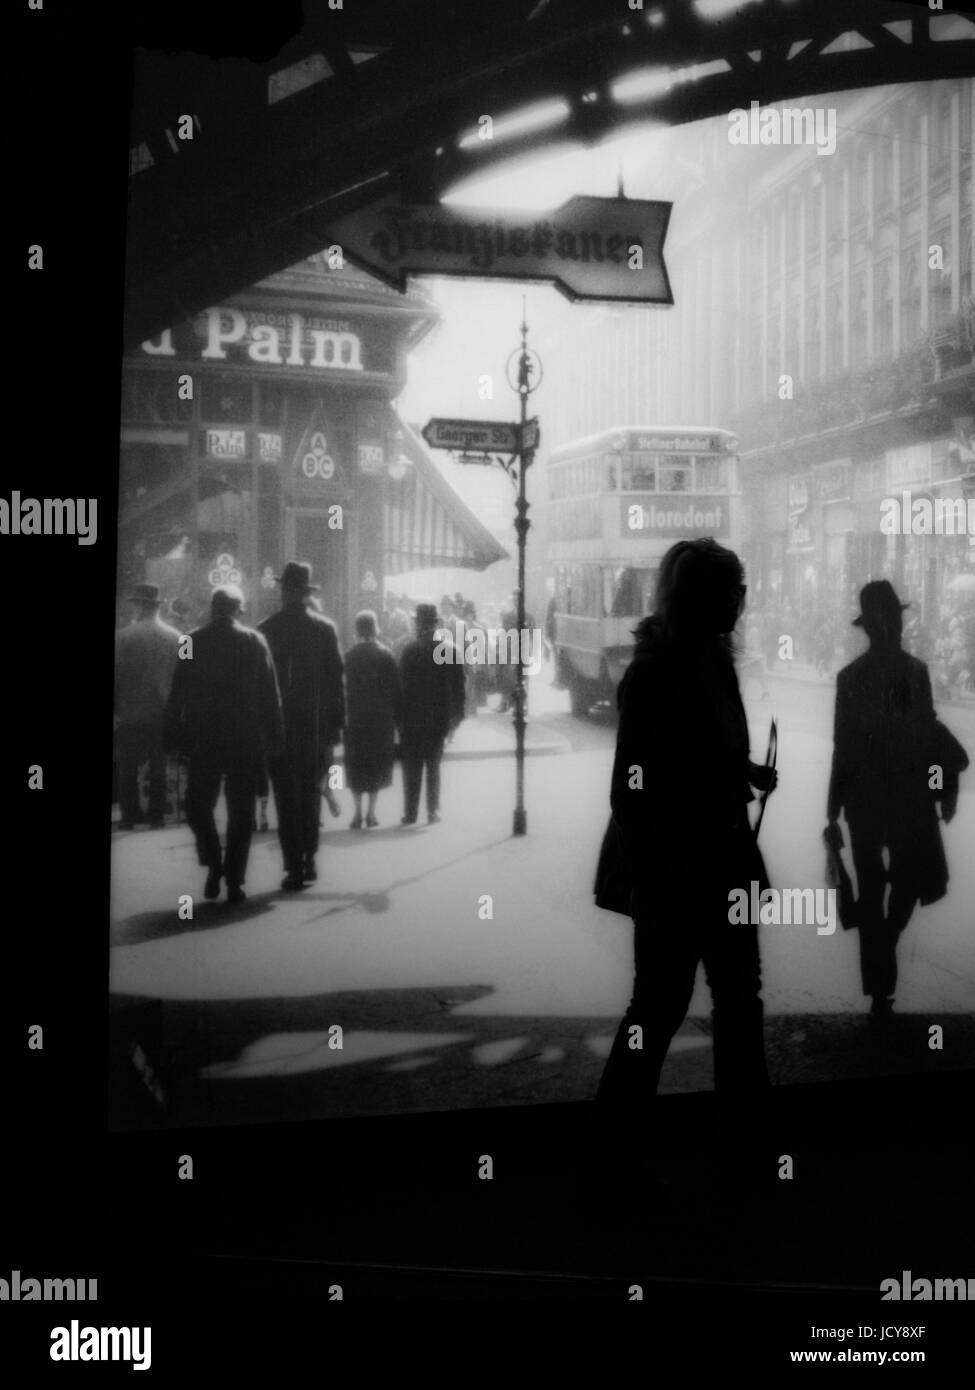 BERLIN GERMANY- BERLIN CITY MUSEUM -  HISTORICAL PICTURE WITH A VISITOR SILHOUETTE  - BERLIN WOMAN - BERLIN HISTORY - Stock Image